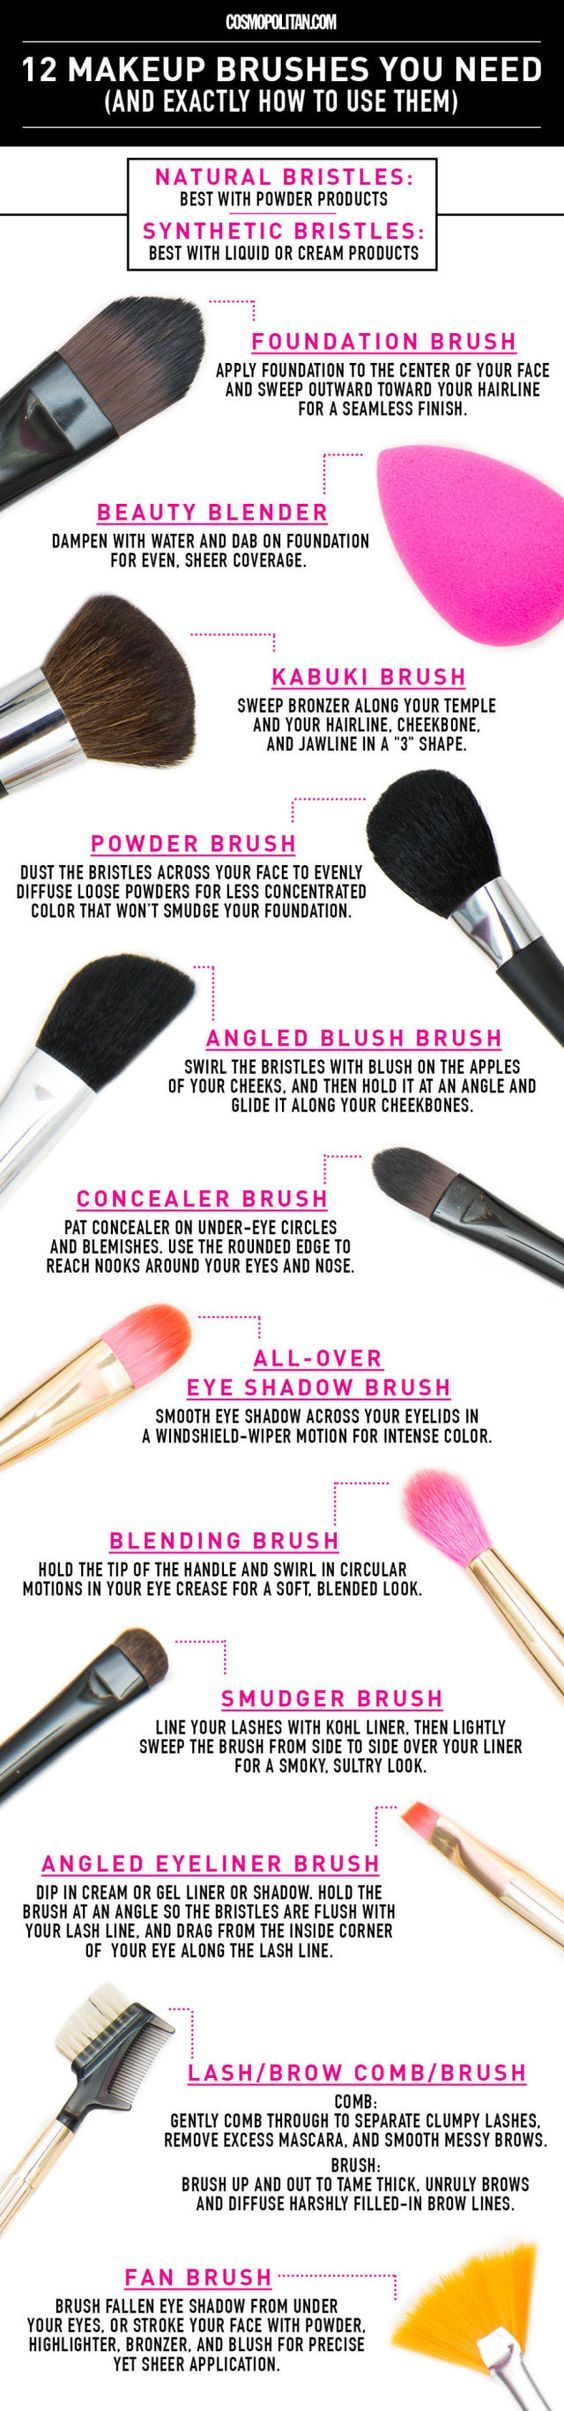 12 make-up tips to enhace your beauty permanently